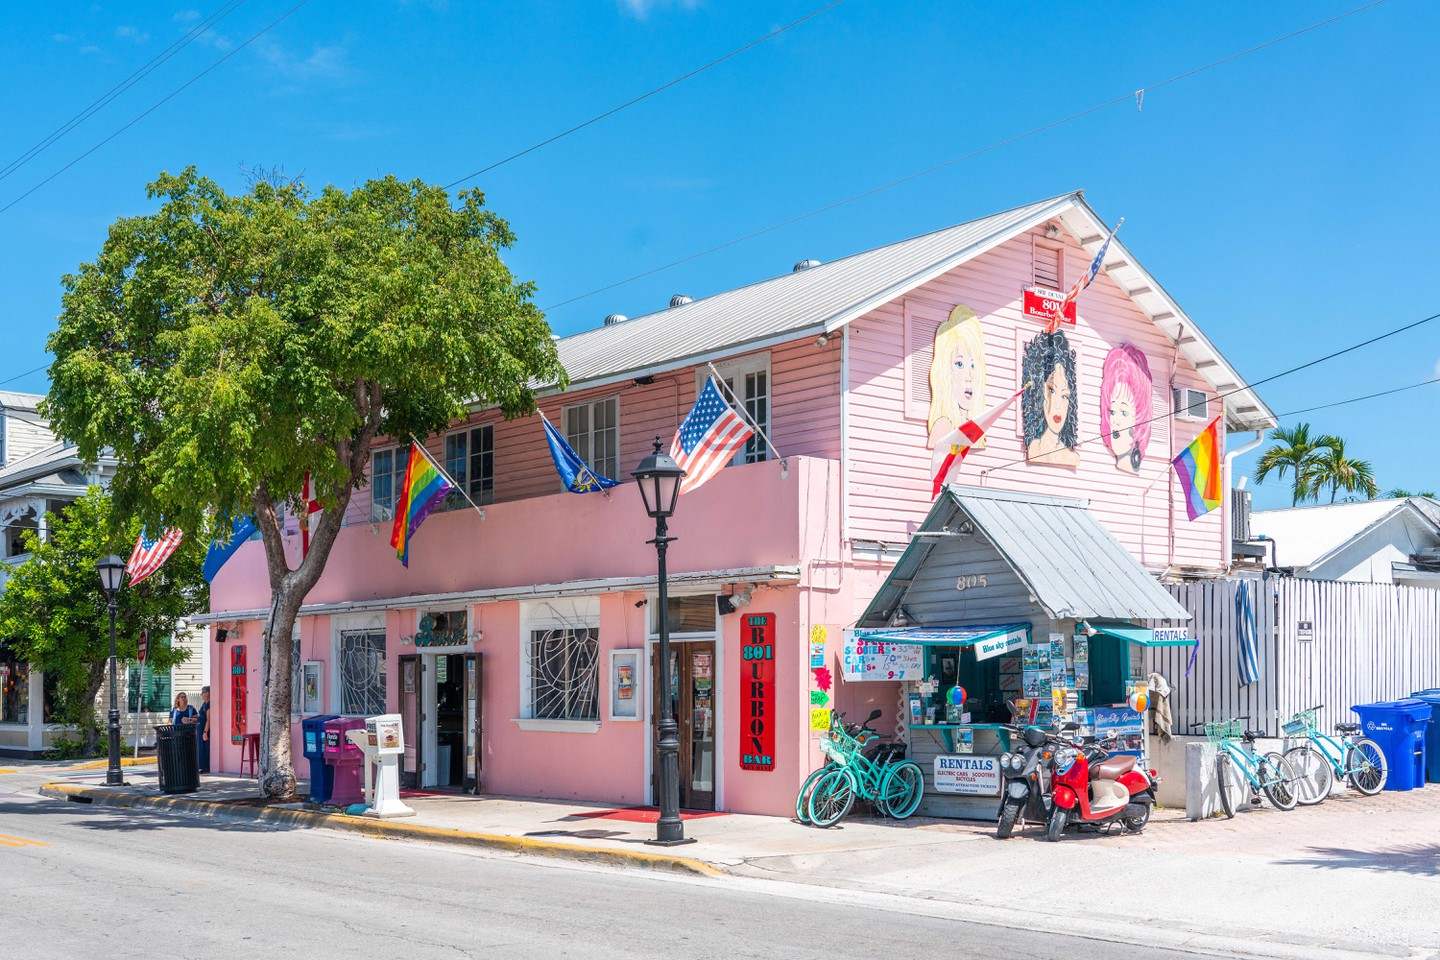 Key West, Florida, USA - September 12, 2019: Quiet Street In Key West, Florida USA